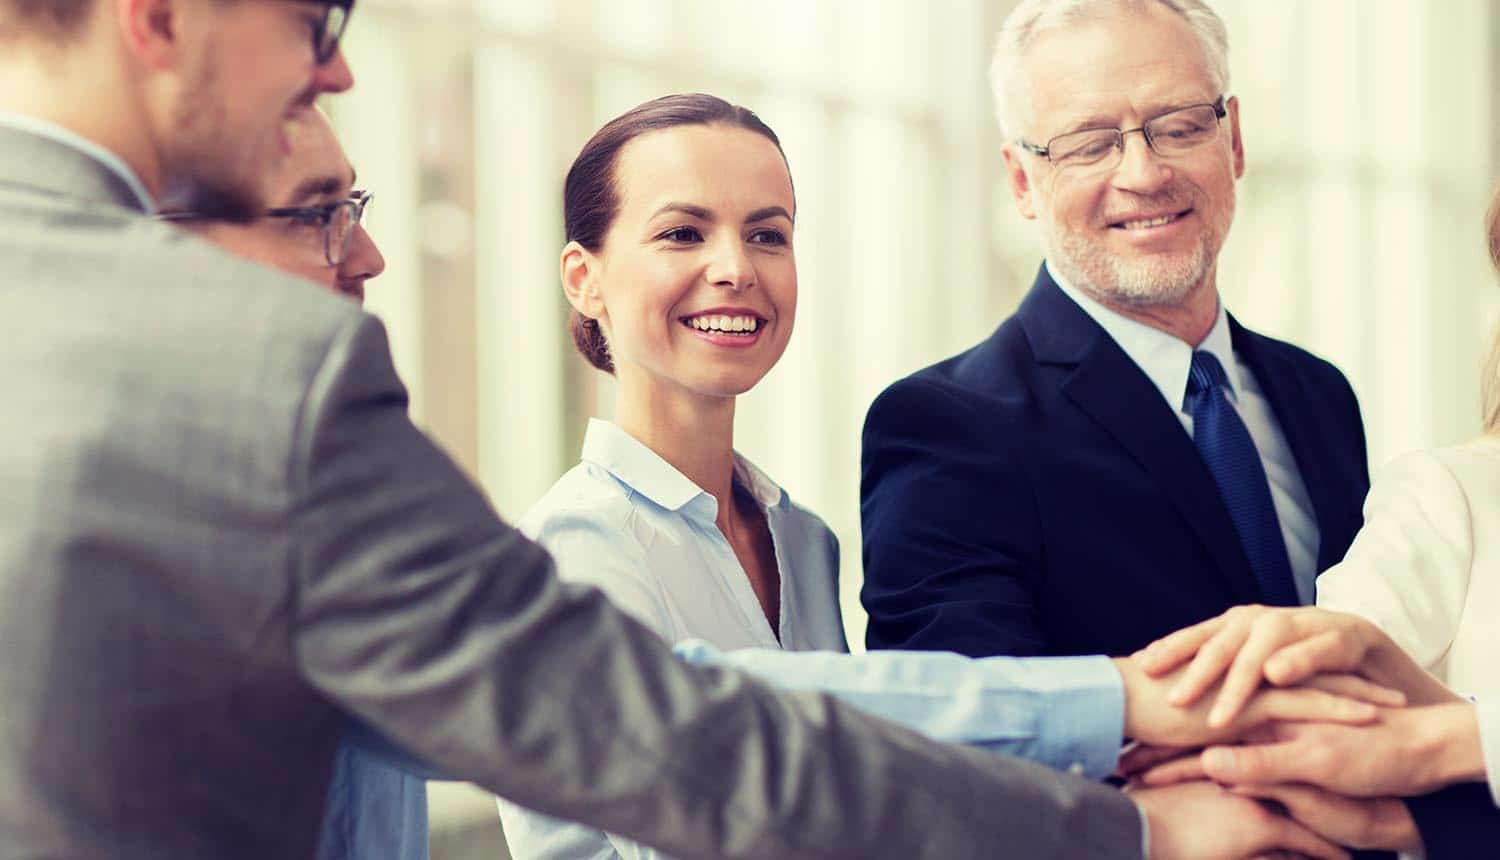 Smiling business people putting hands on top of each other in office